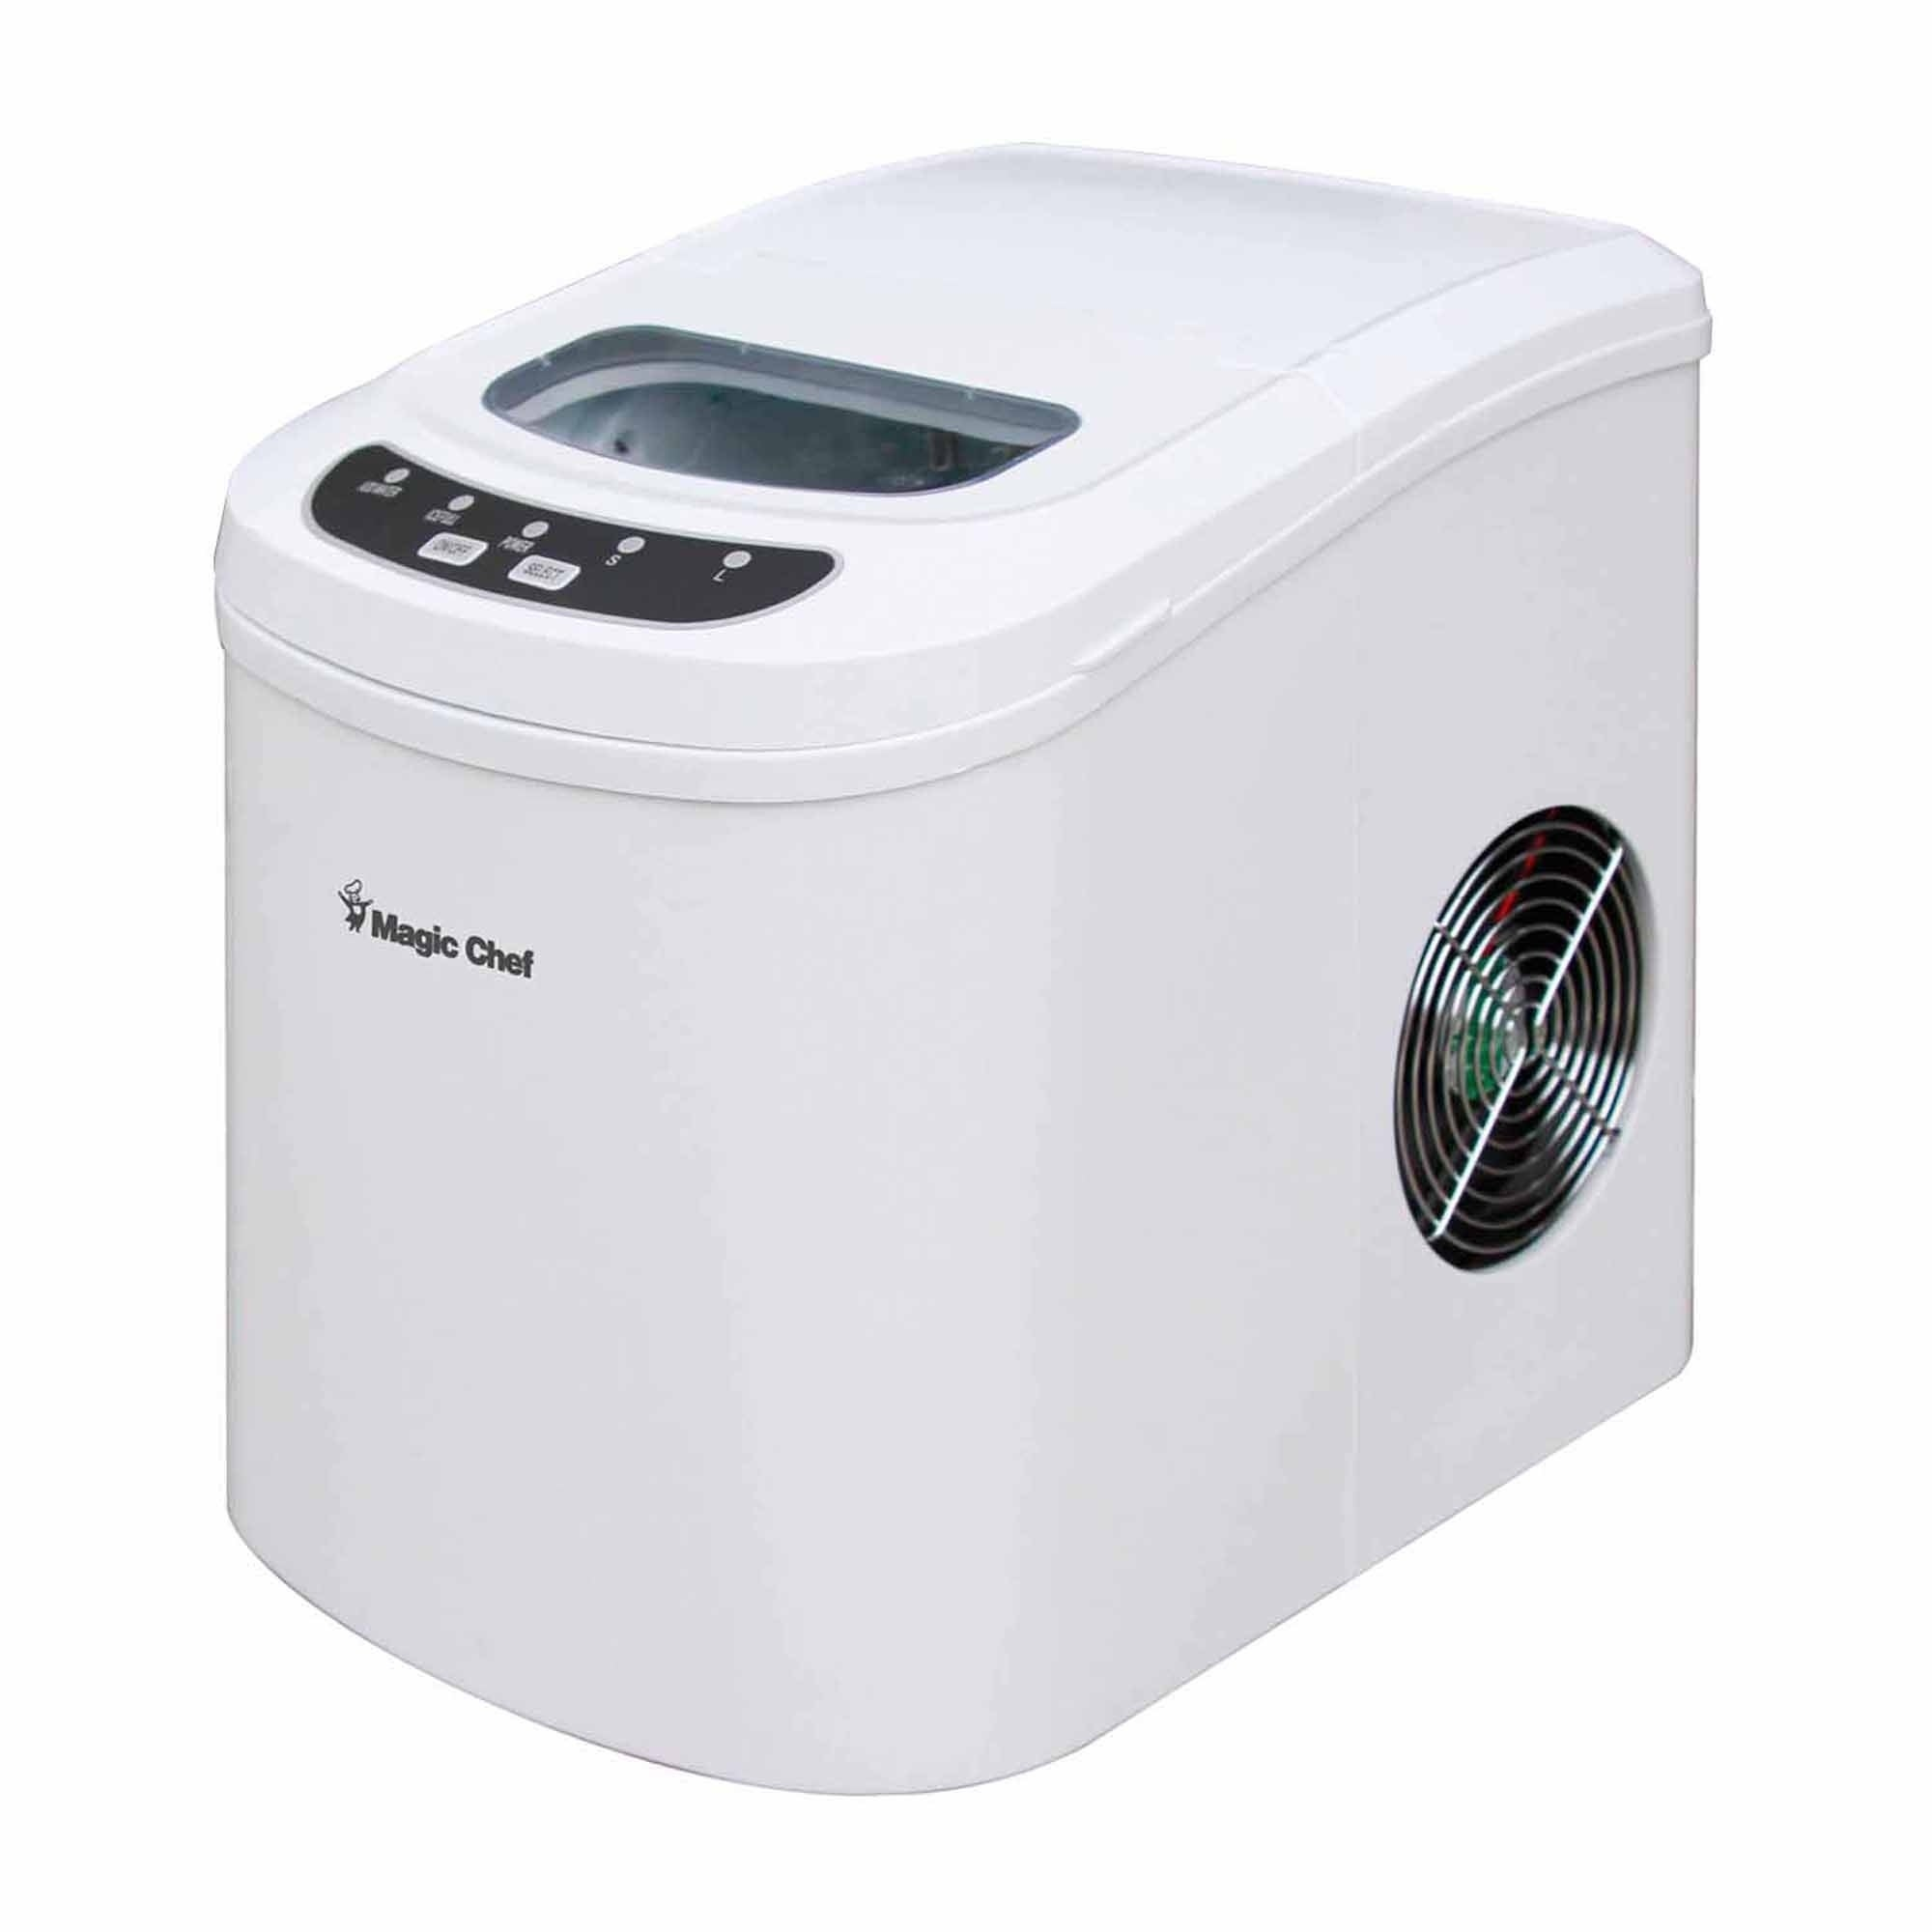 Magic Chef 27-lb. Countertop Ice Maker - White